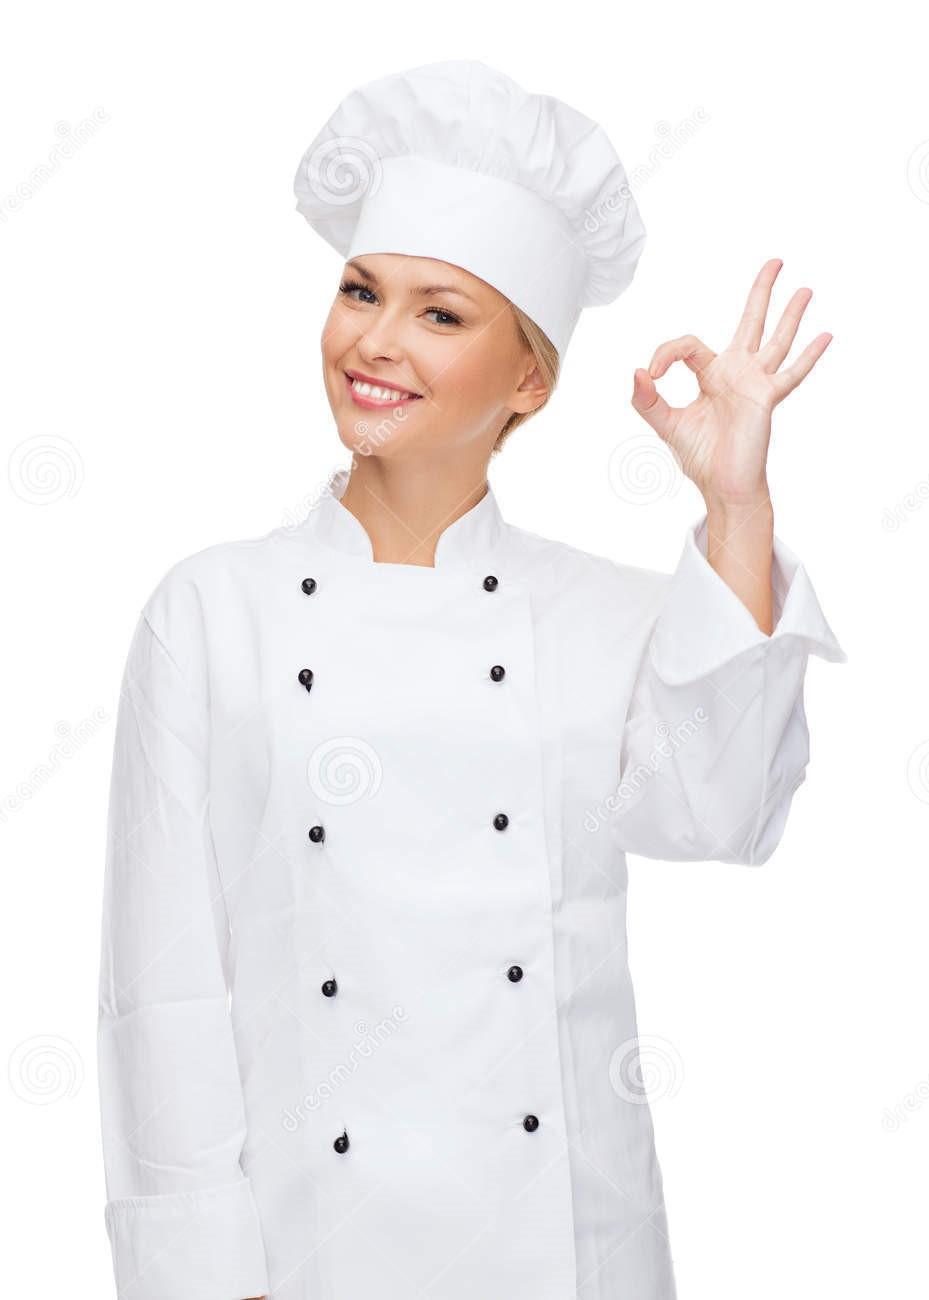 smiling-female-chef